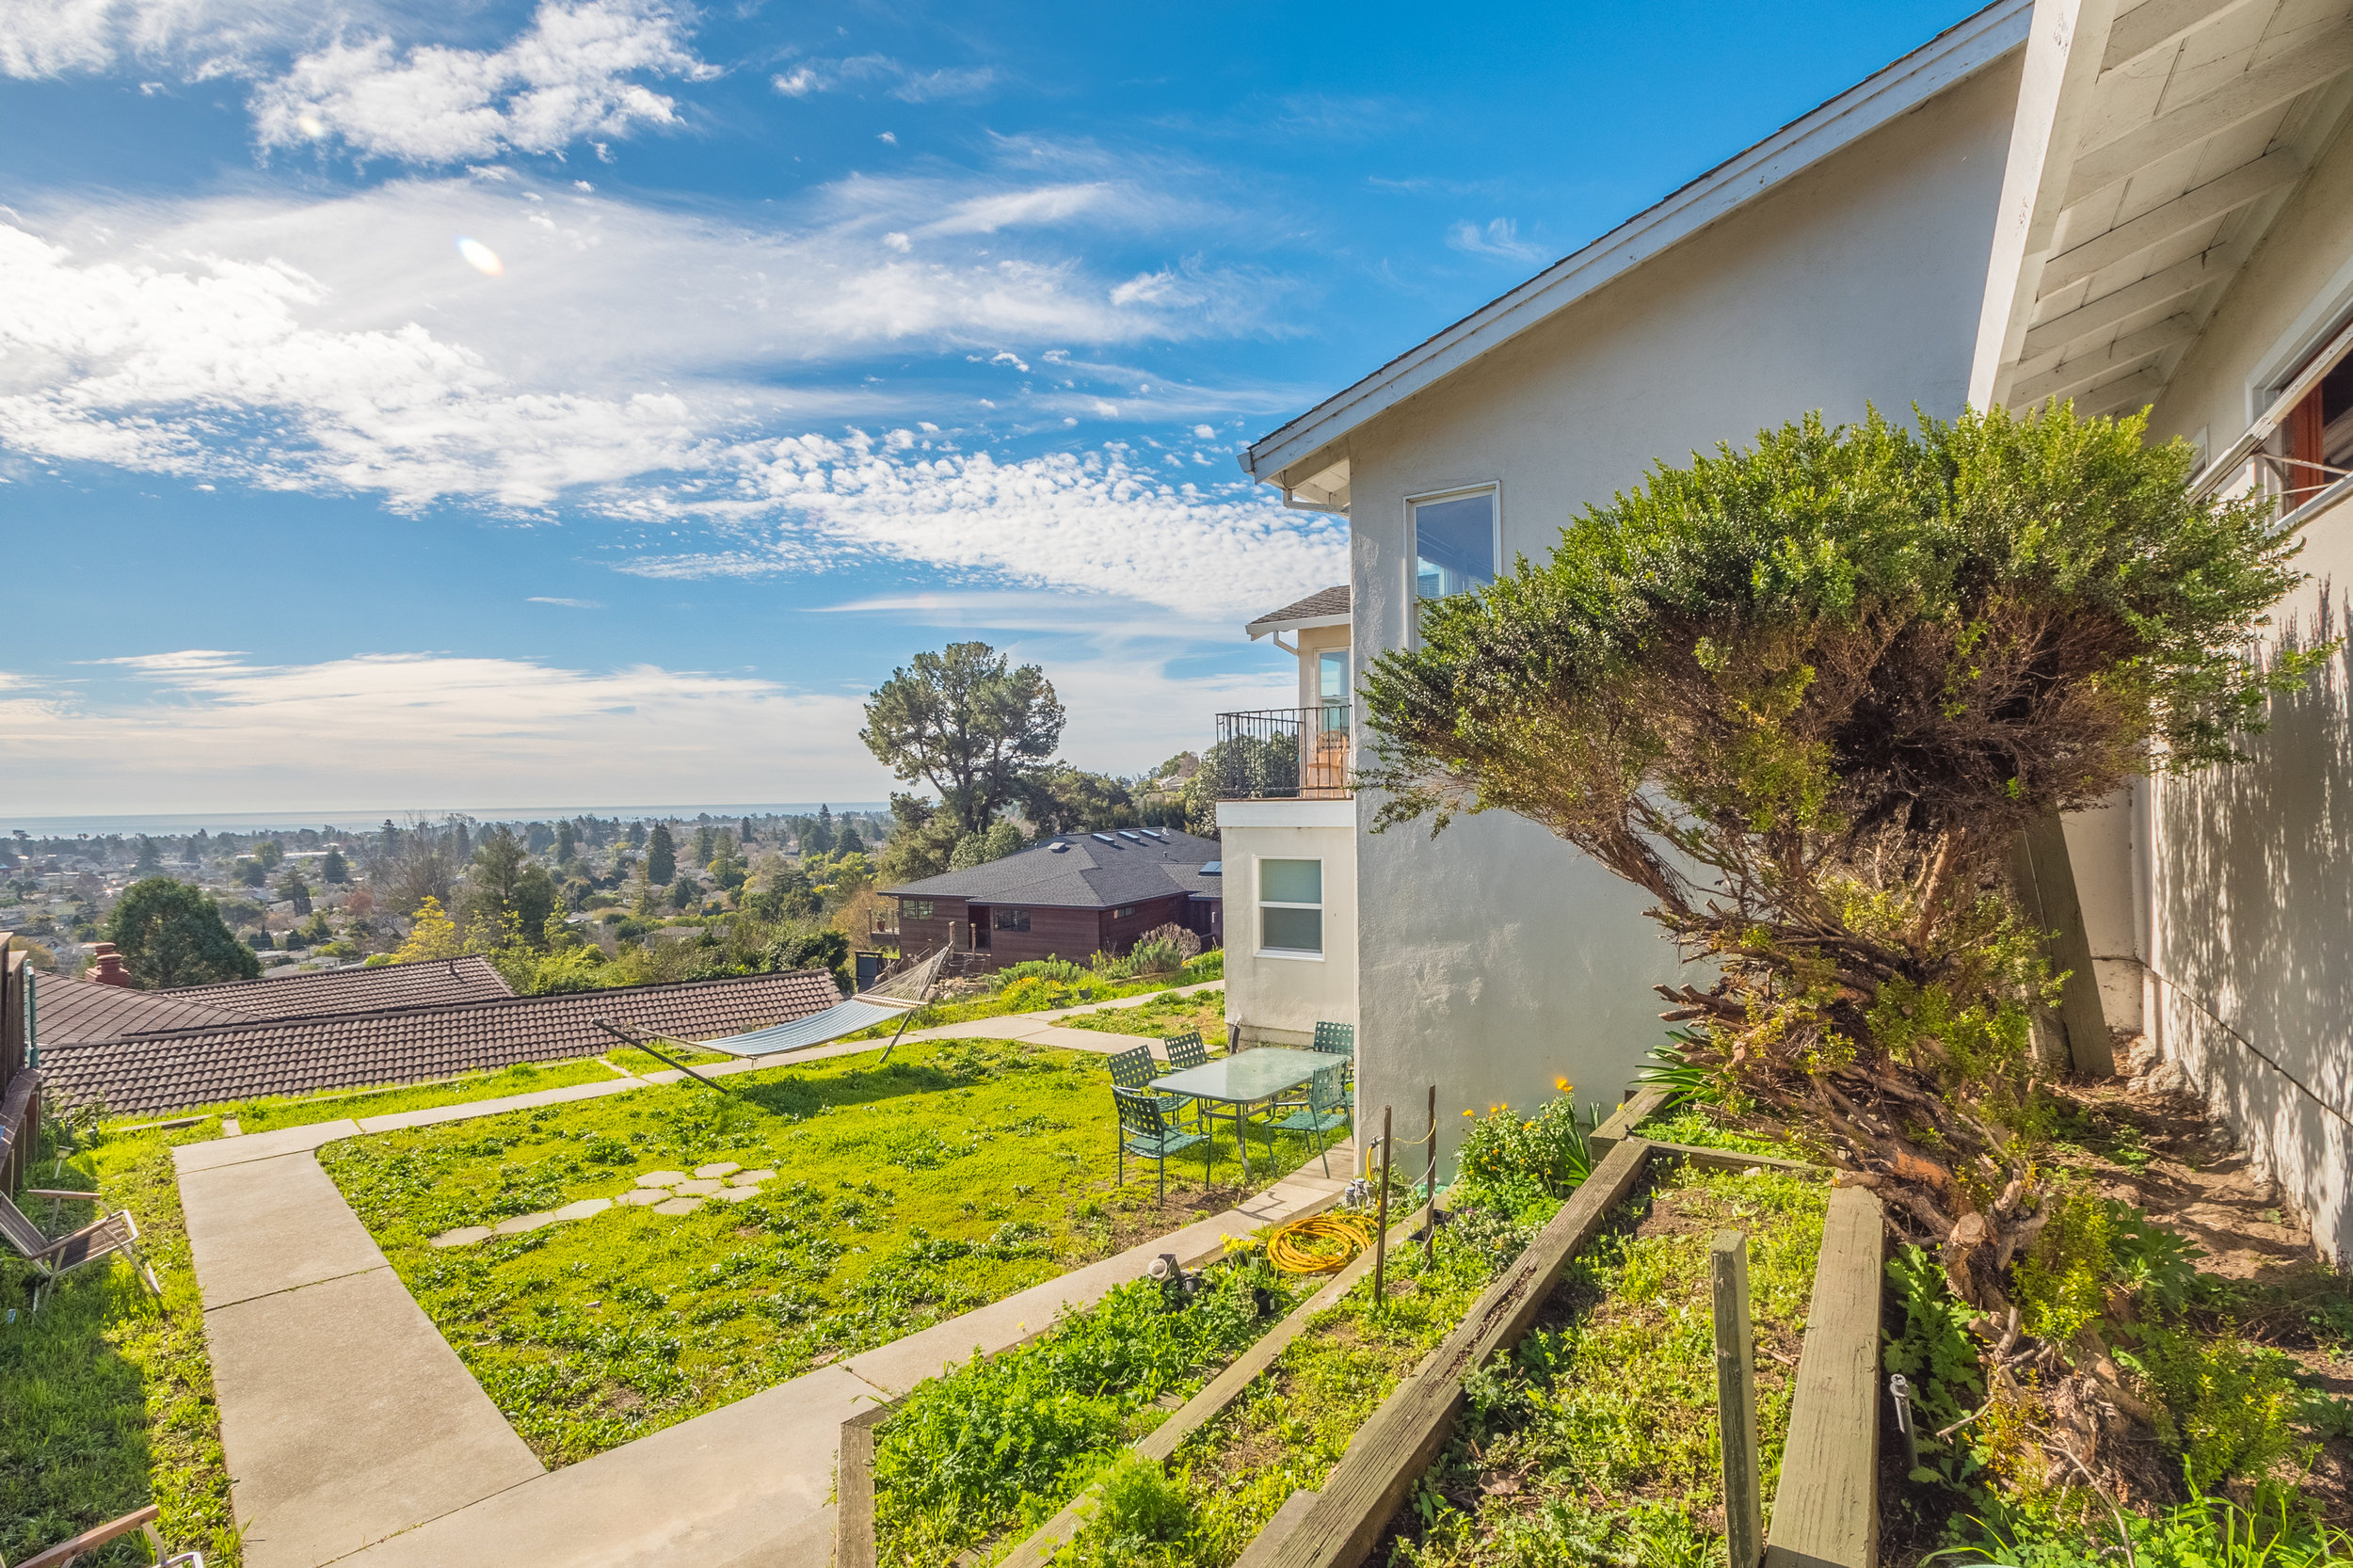 Ocean View Property in Santa Cruz.jpg